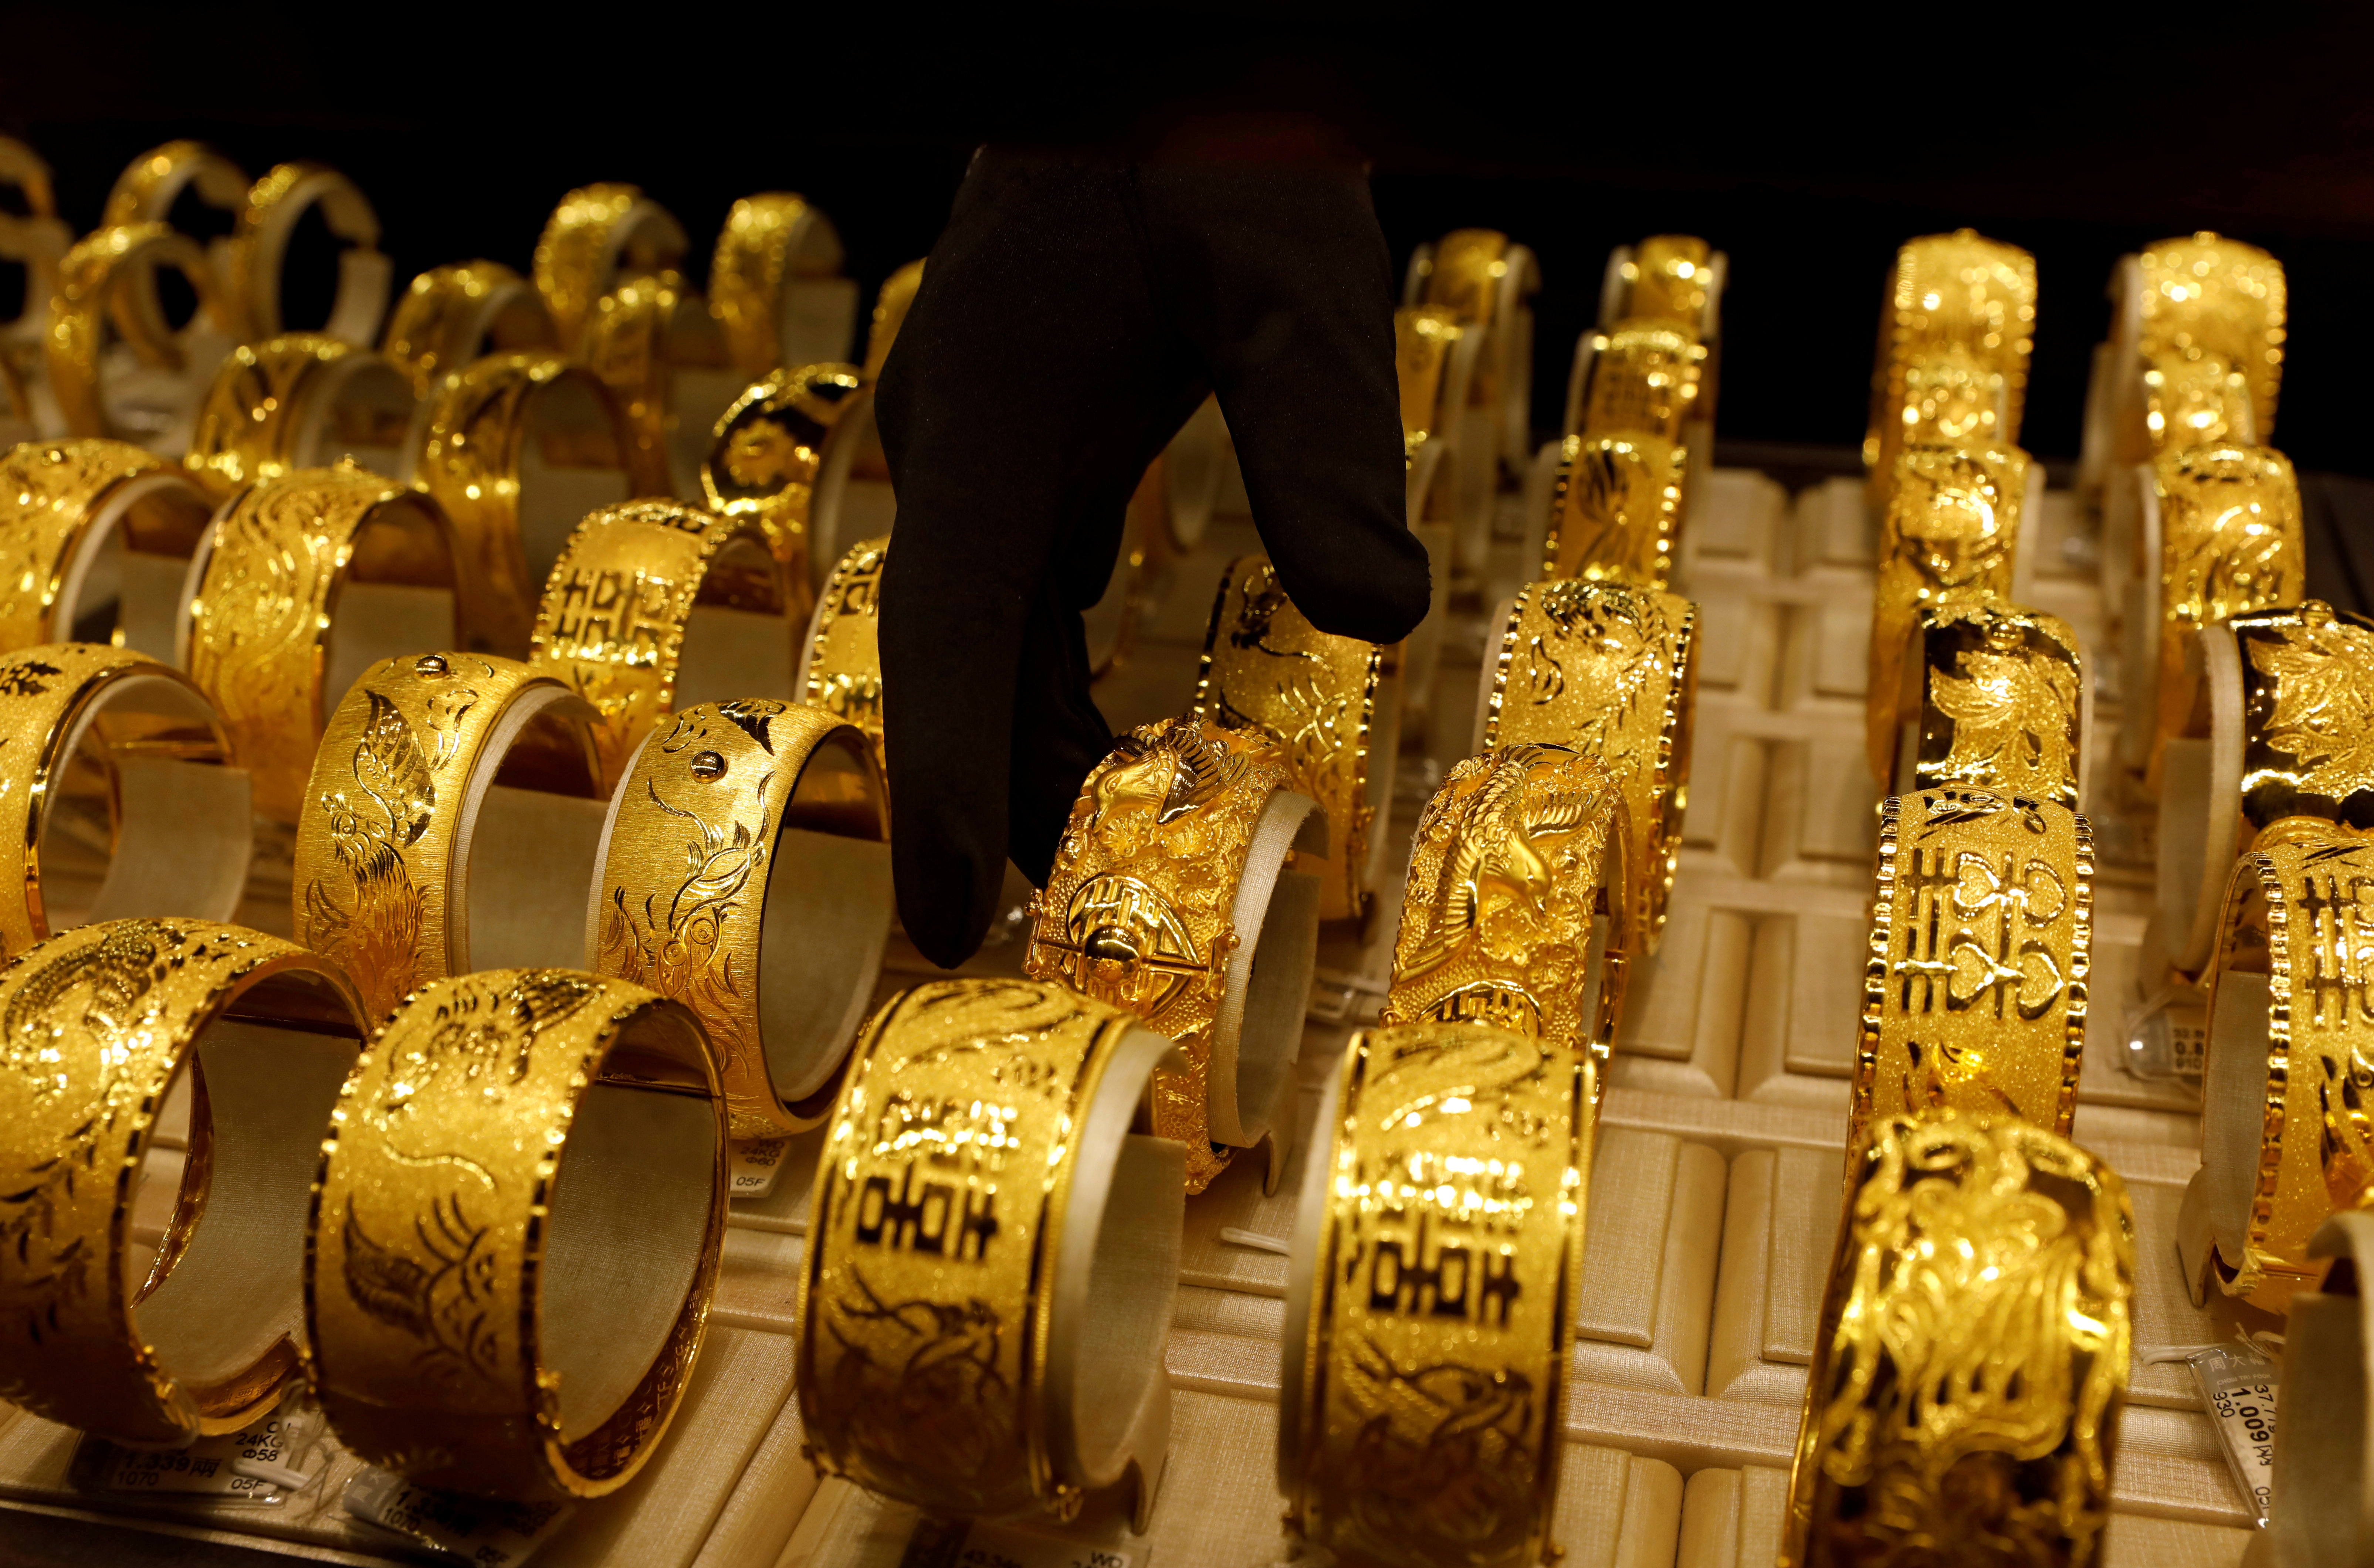 A salesperson arranges 24K gold bracelets for Chinese weddings at Chow Tai Fook Jewellery store in Hong Kong, China December 14, 2017. REUTERS/Tyrone Siu/File Photo